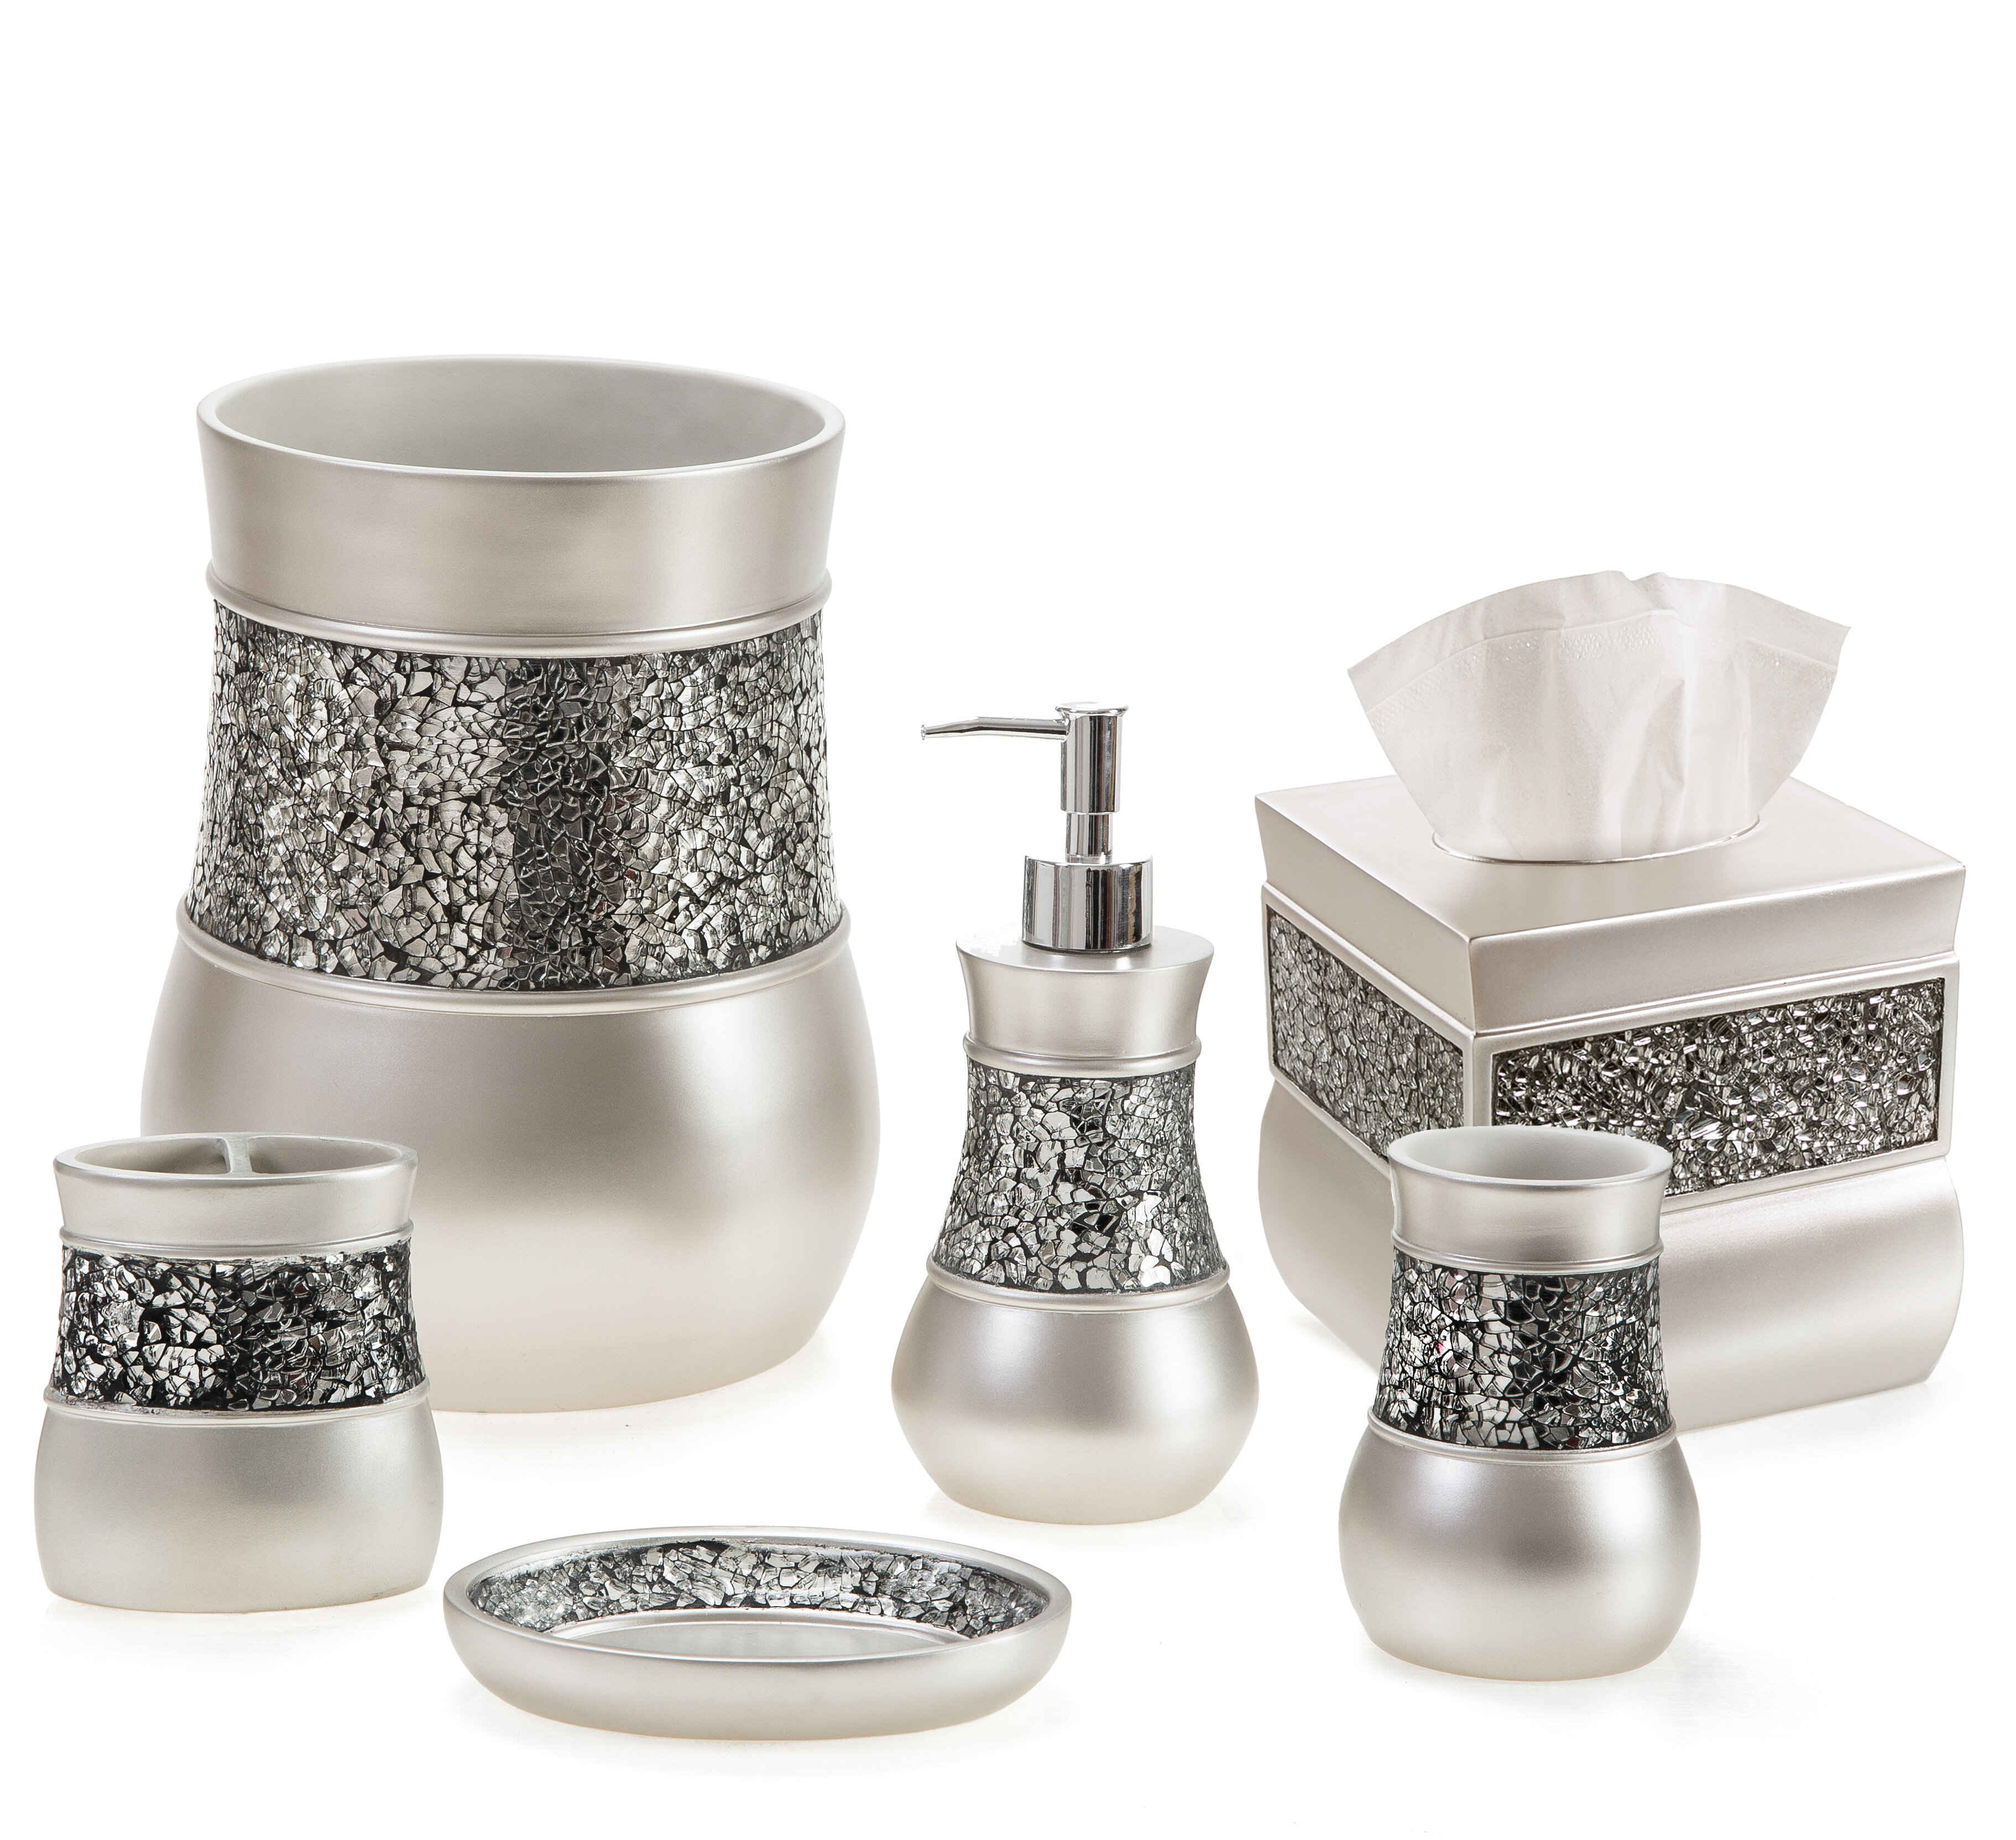 Everly Quinn Keira Brushed Nickel 6 Piece Bathroom Accessory Set